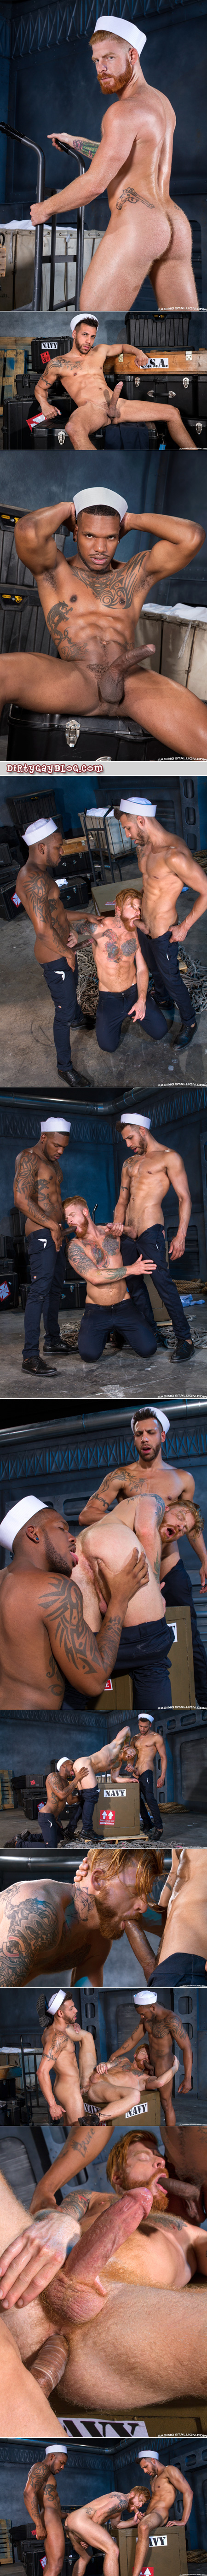 Two hung Latino sailors fucking a male redhead in his ass and mouth at the same time.